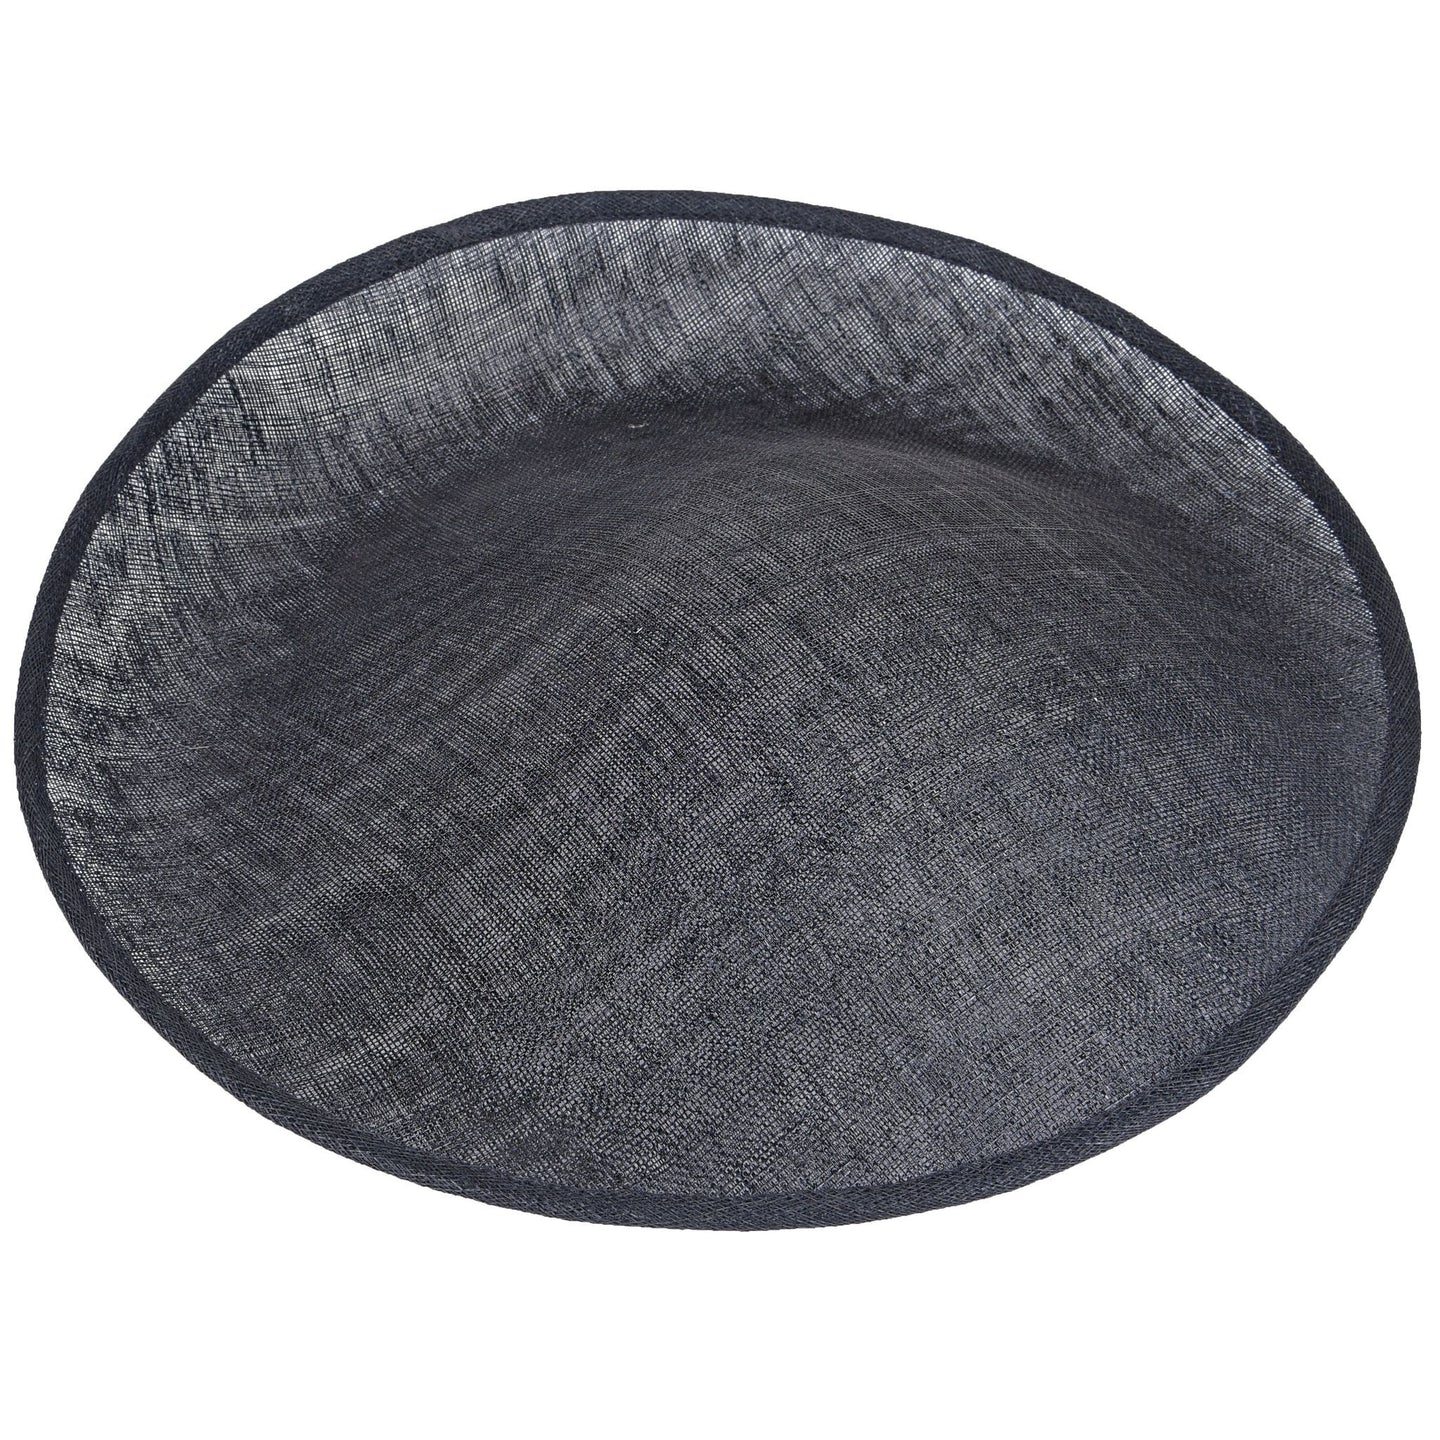 Sinamay Upbrim Hat Base for Hats Fascinators and Millinery HA044